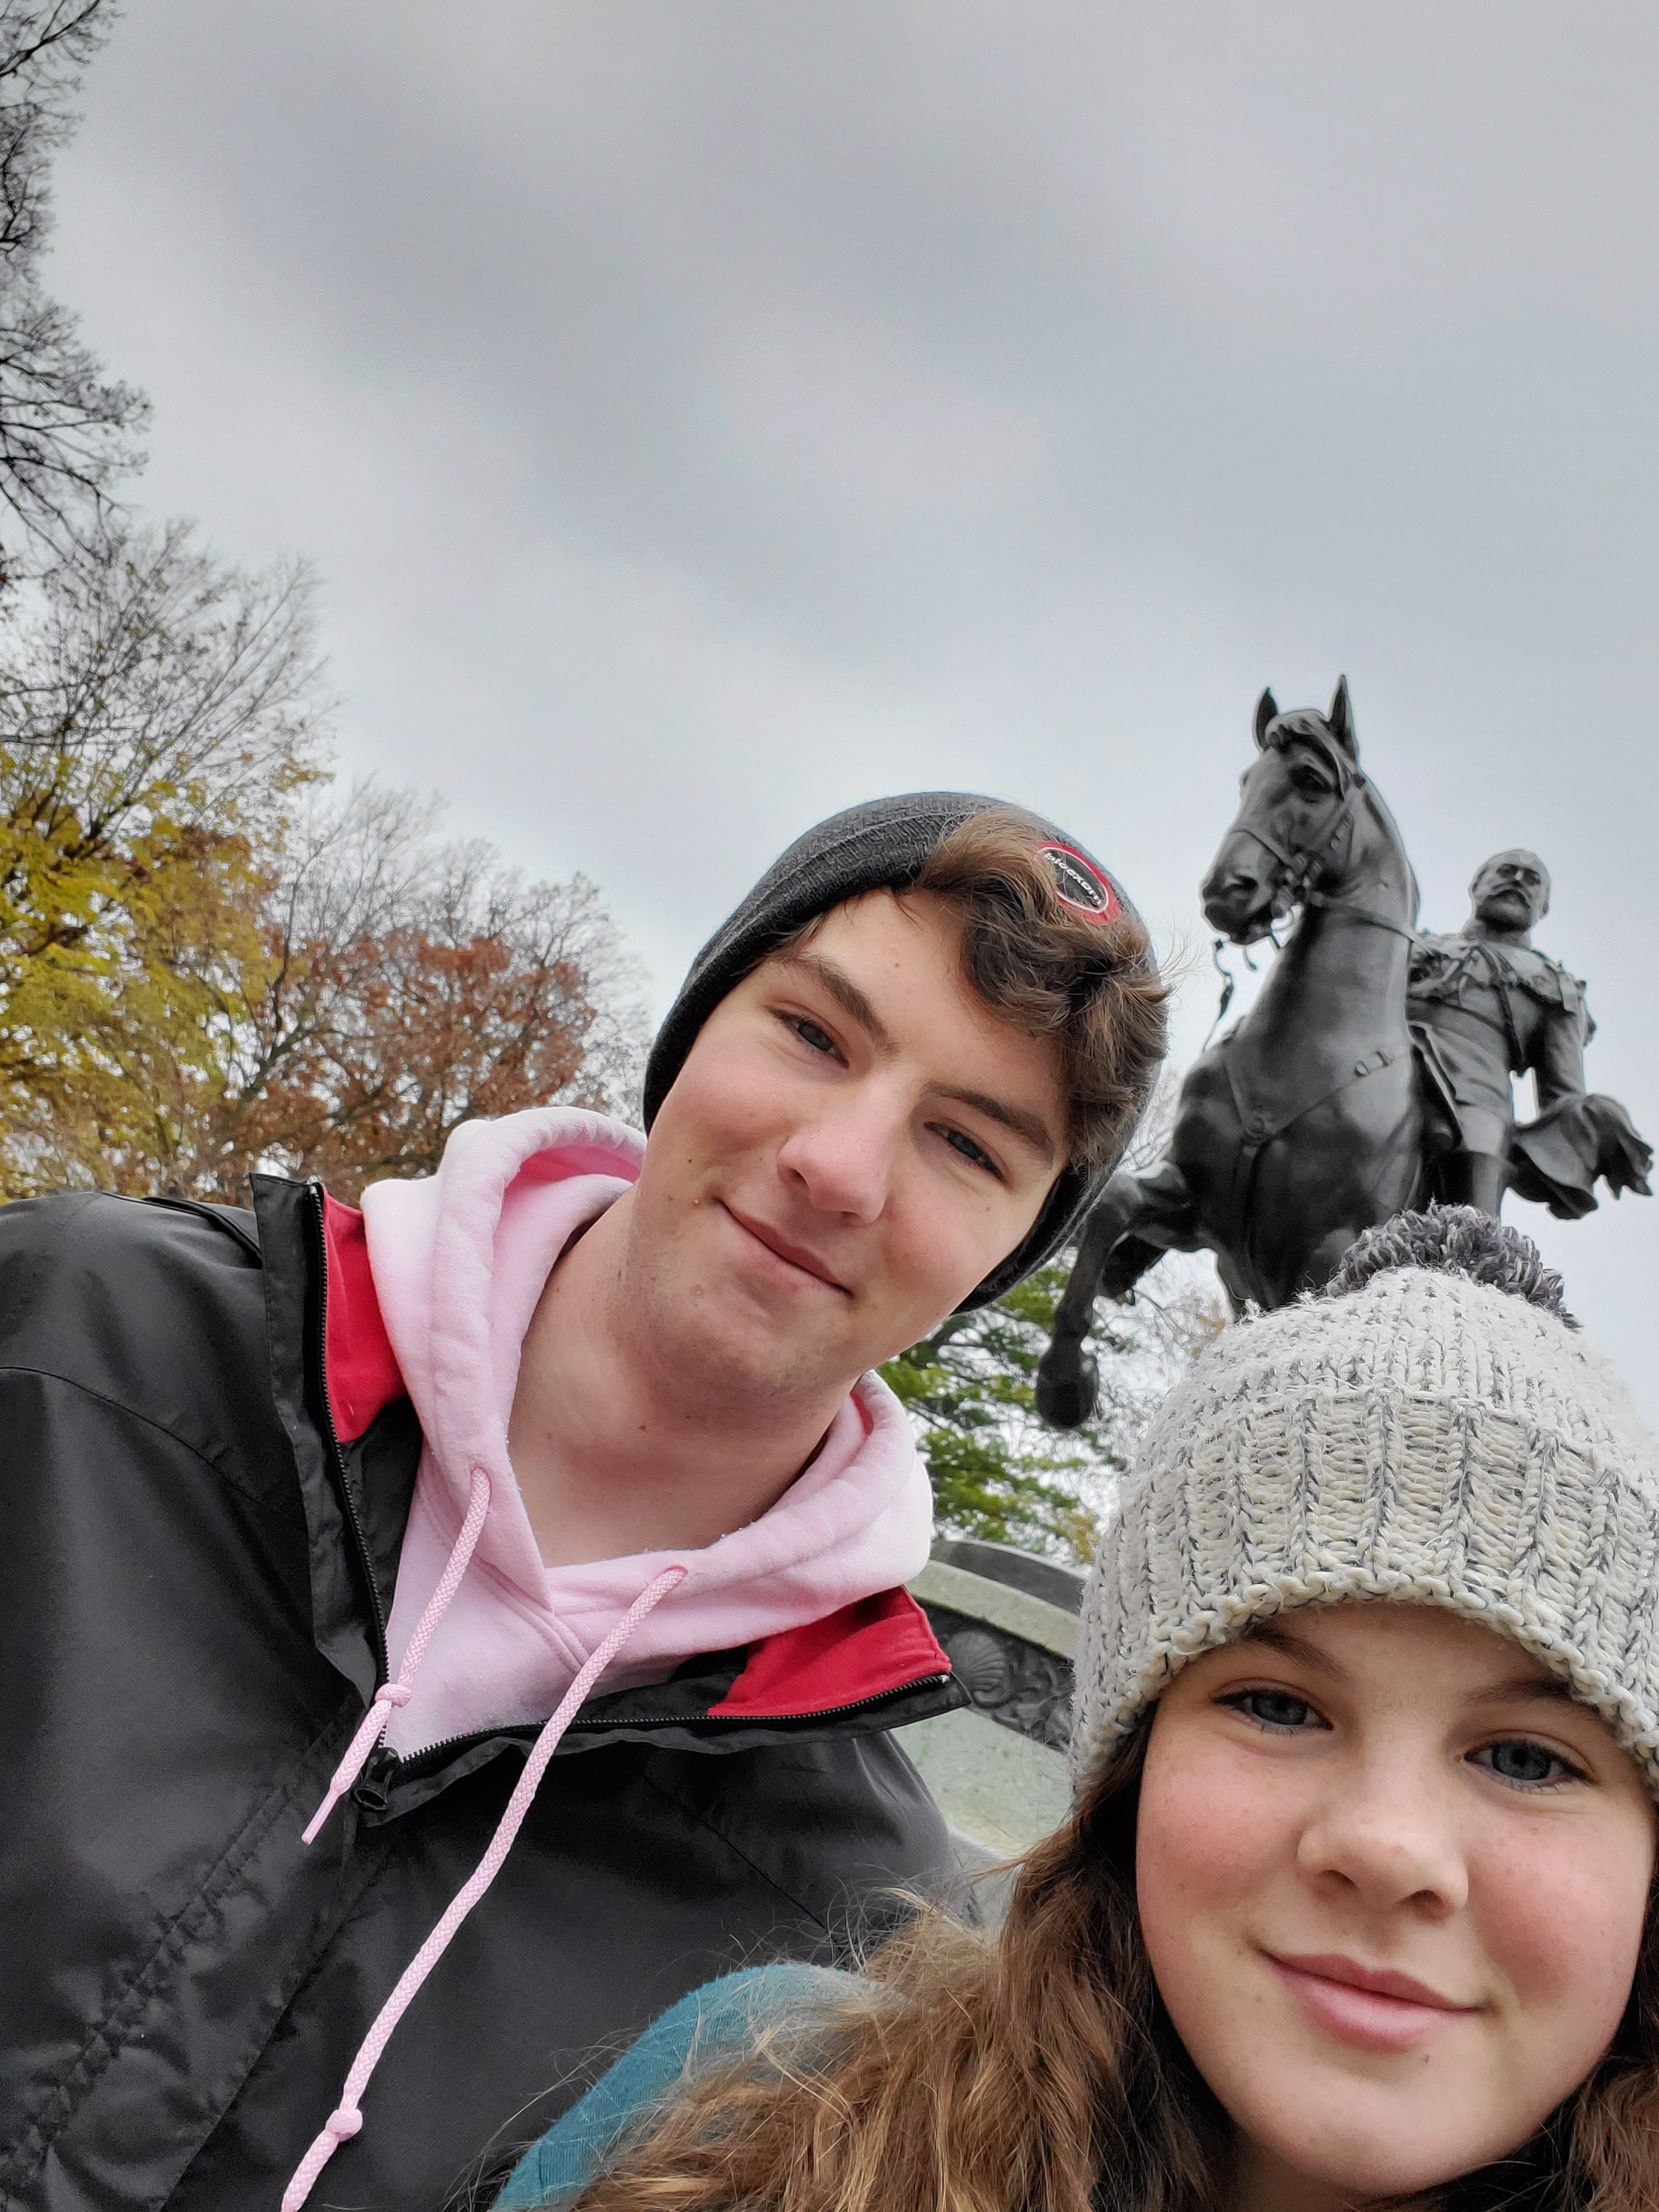 two teenagers with a statue in the background